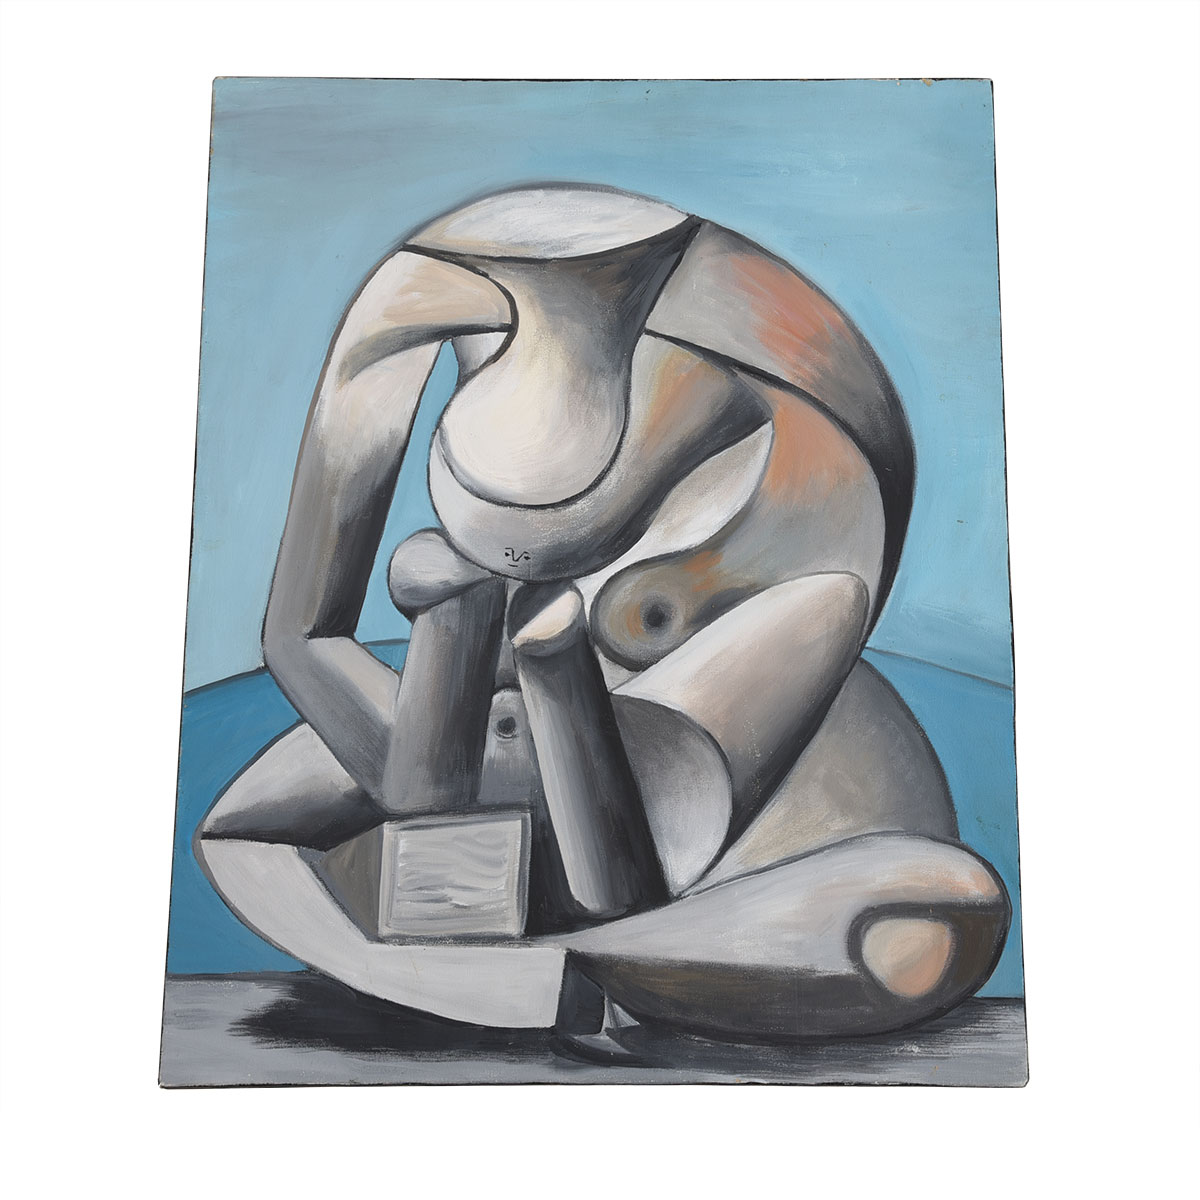 Vintage Cubist Style Painting with Thoughtful Figure